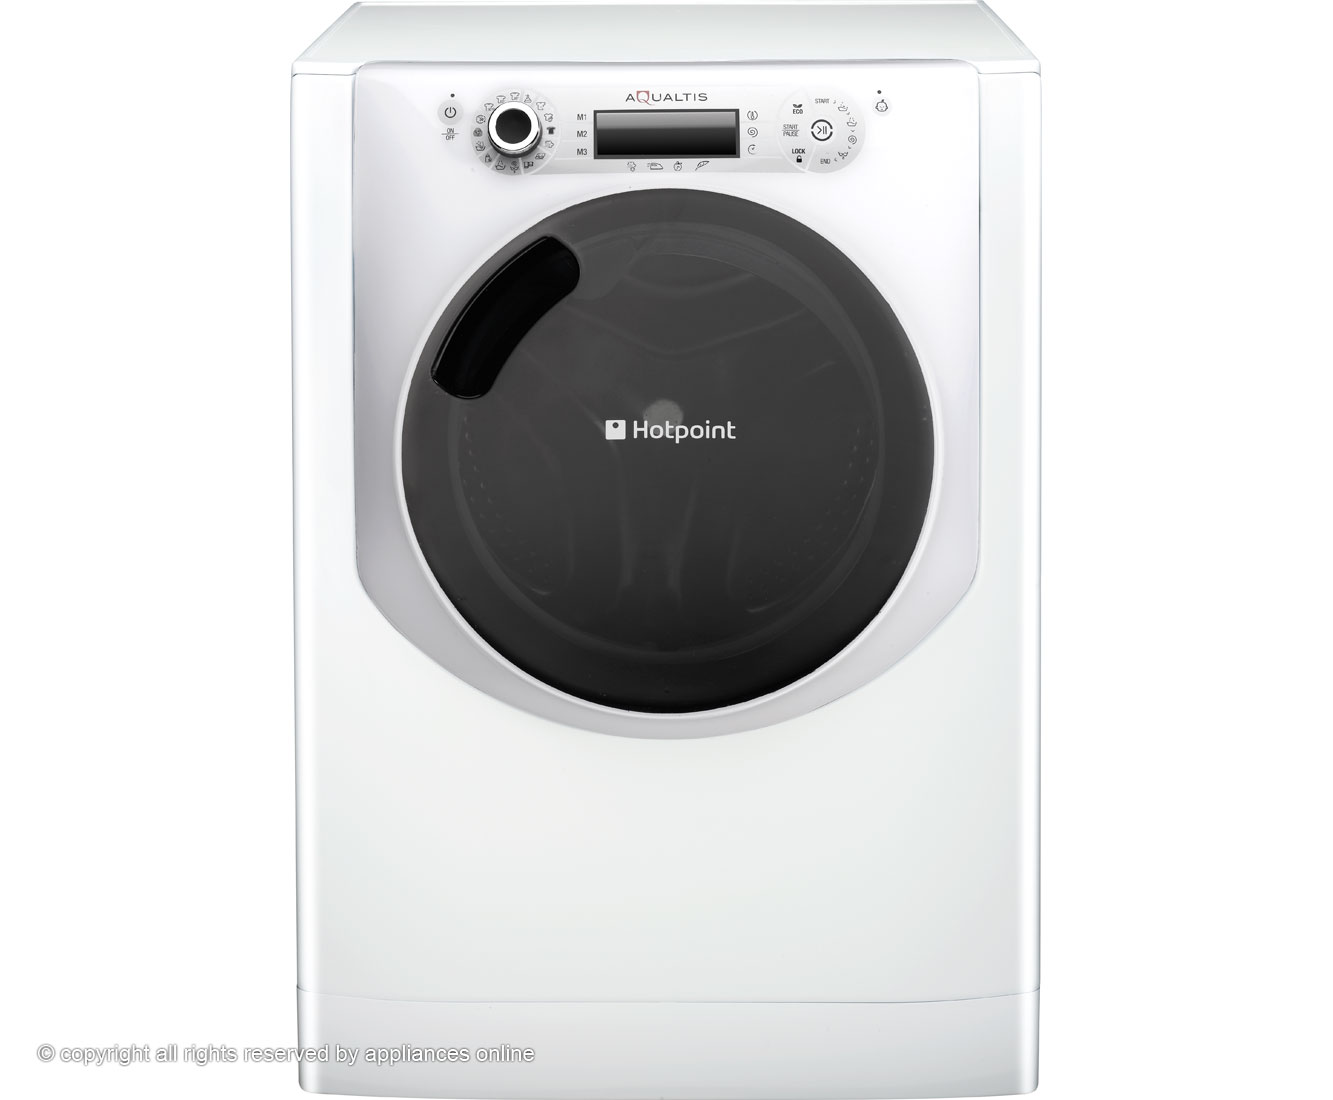 Hotpoint Aqualtis AQ113D697I 11Kg Washing Machine with 1600 rpm - White / Ice